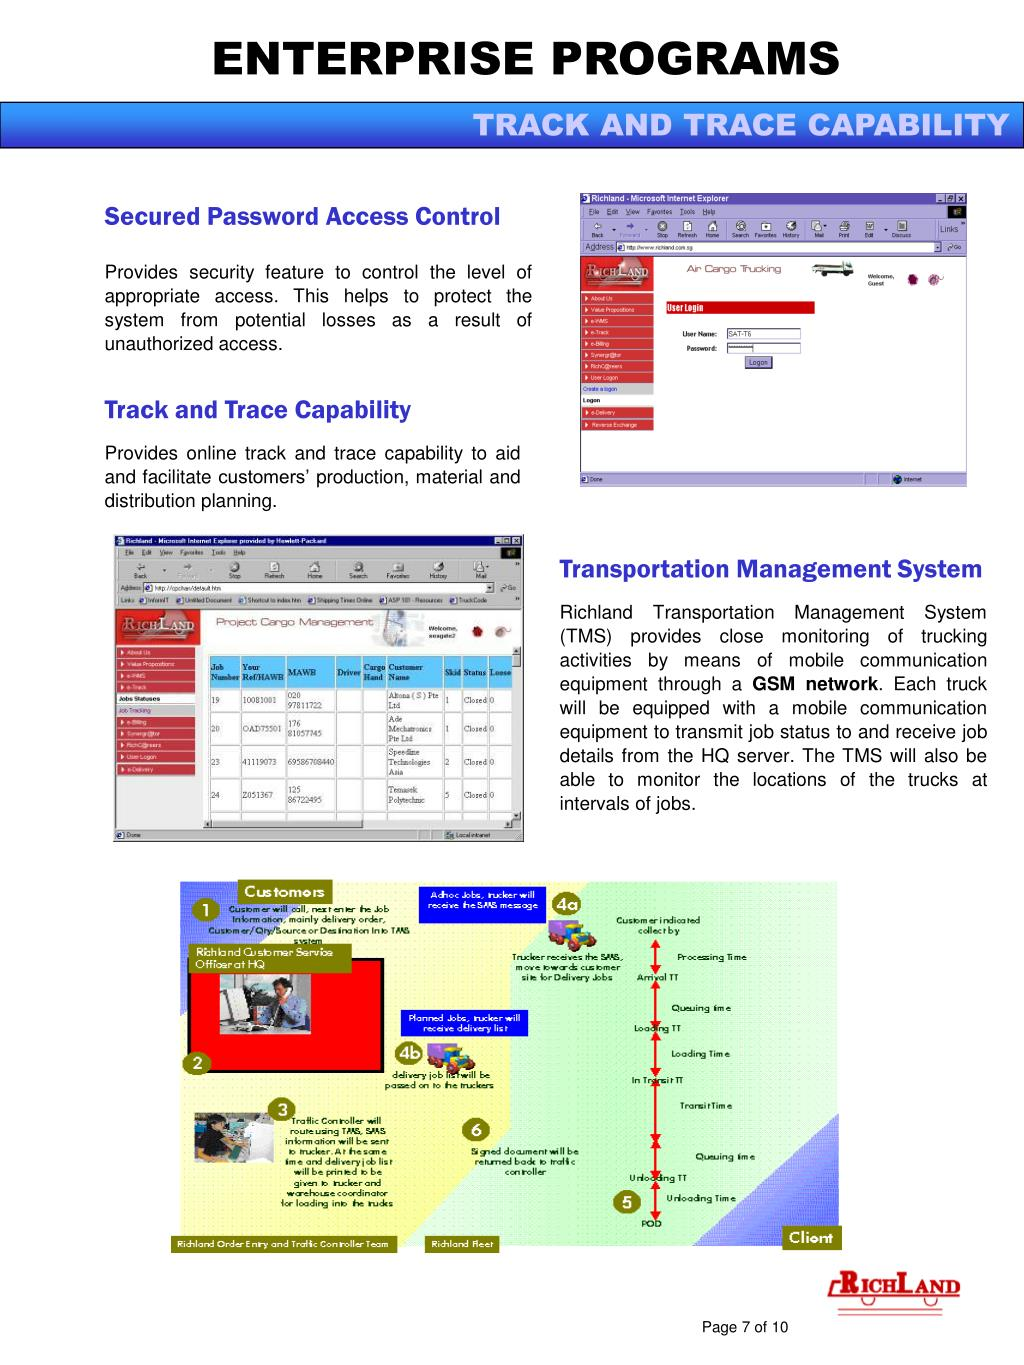 TRACK AND TRACE CAPABILITY